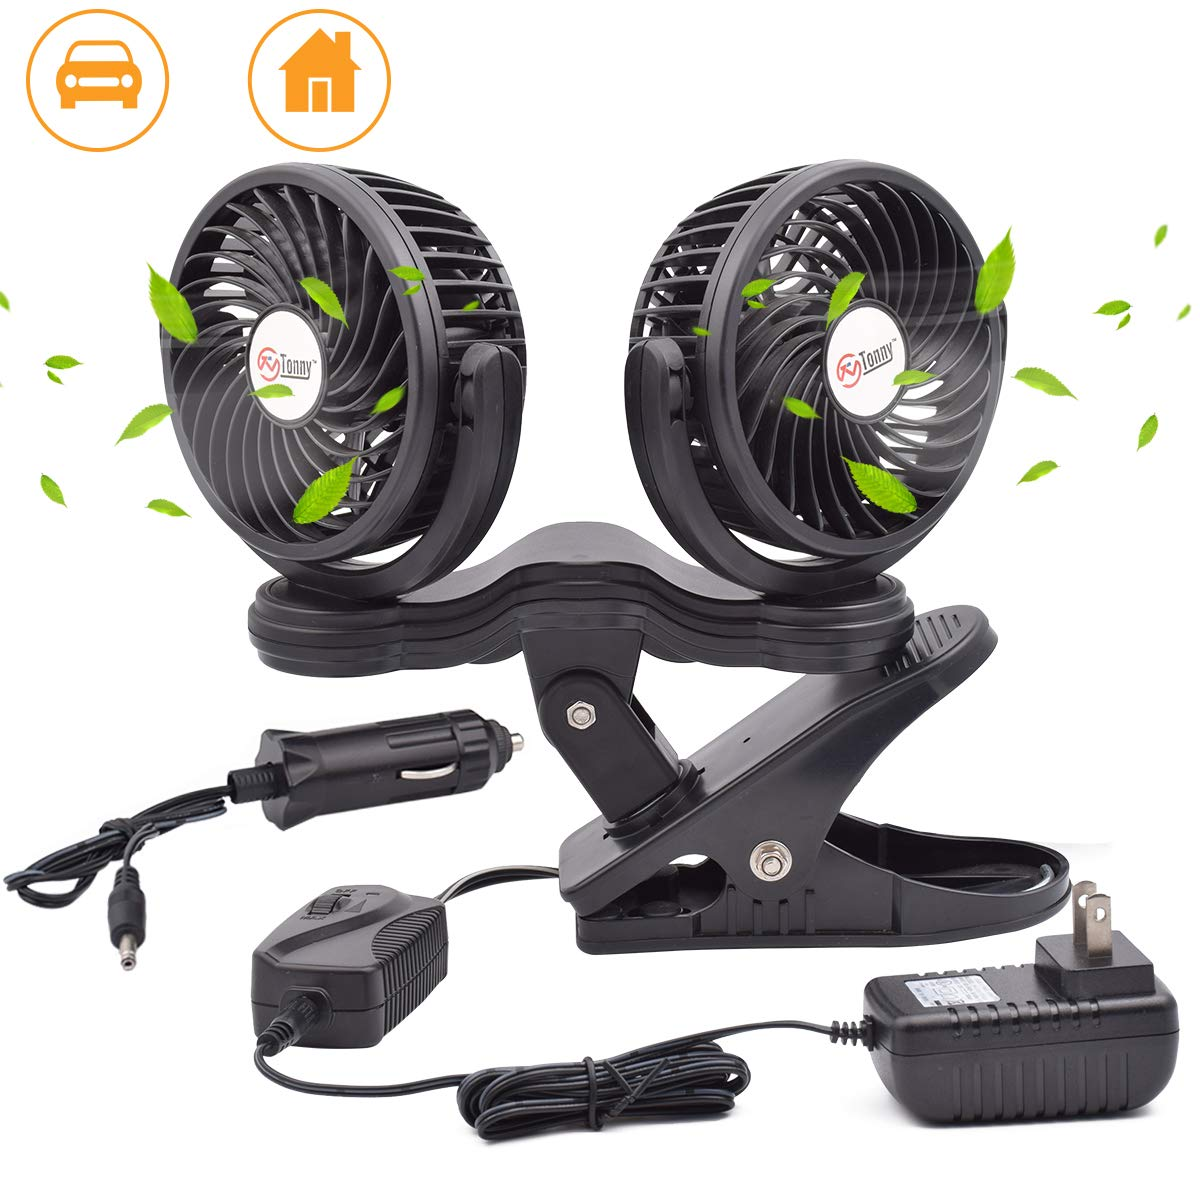 TN TONNY Dual Head Clip Fan, 4 Inches Electric Car Clip Fans 360° Rotatable,12V Cooling Air Fan with Stepless Speed Regulation for Vehicle or Home by TN TONNY